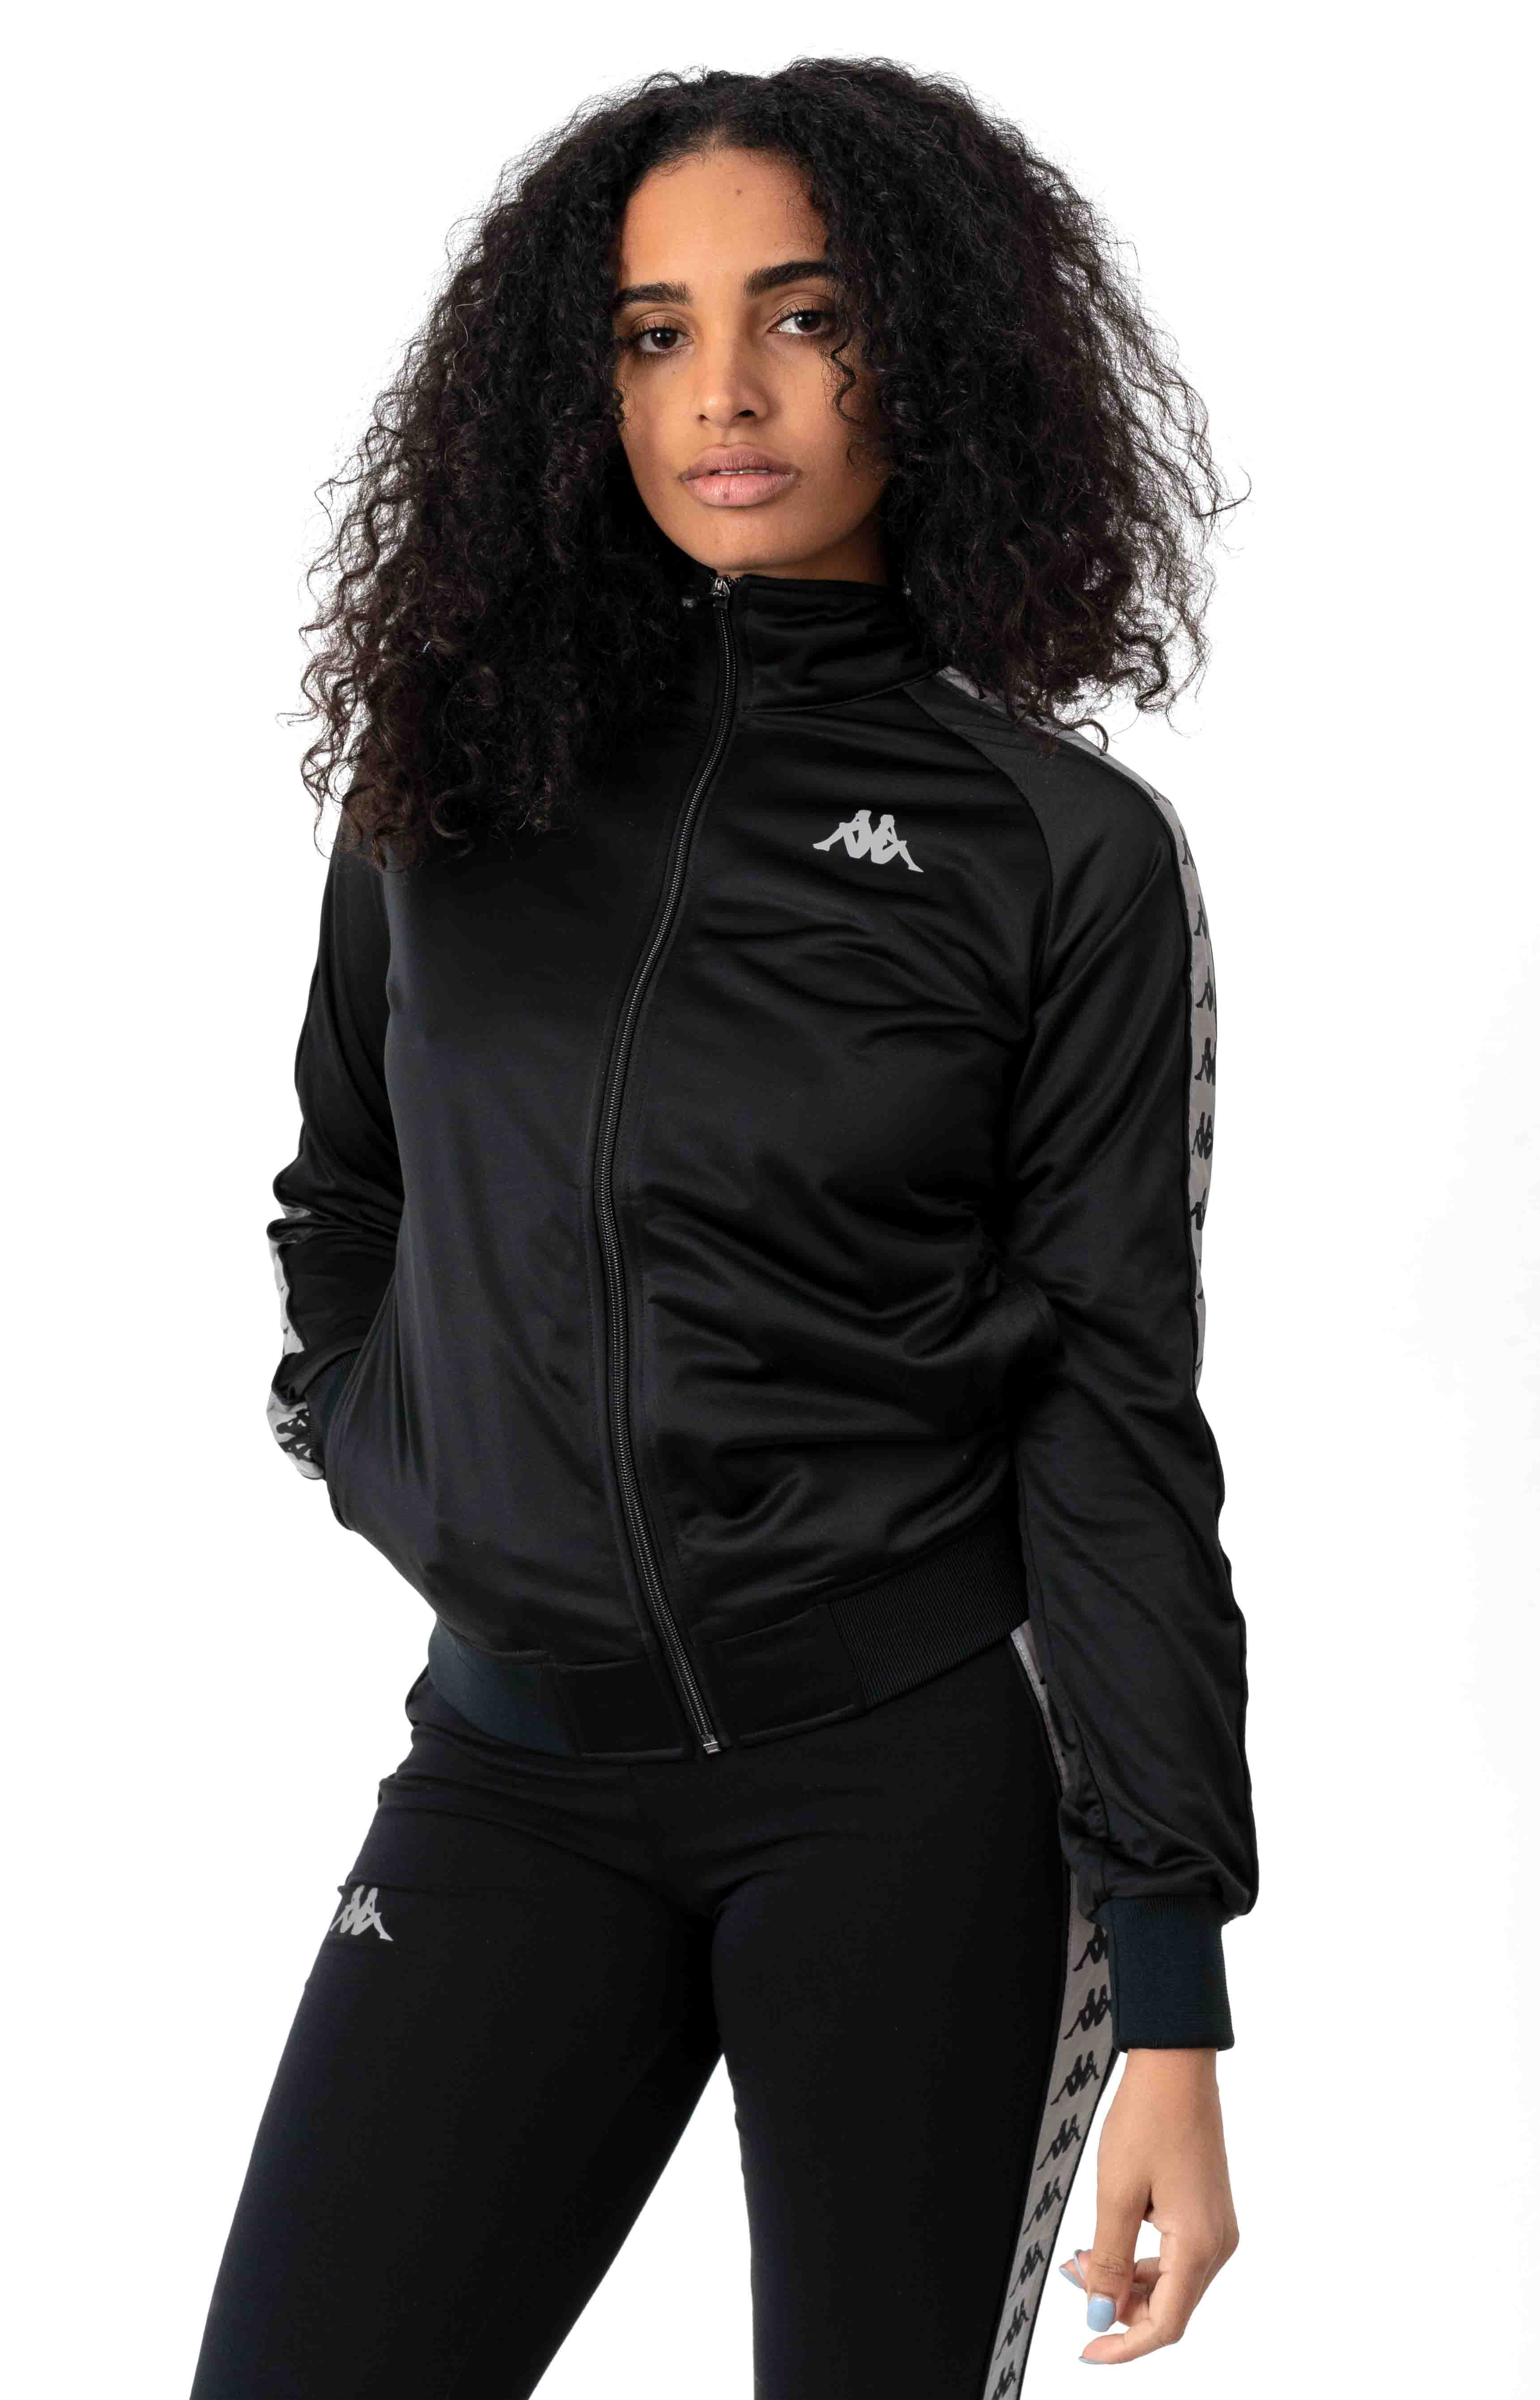 222 Banda Dolly Track Jacket - Black/Reflective